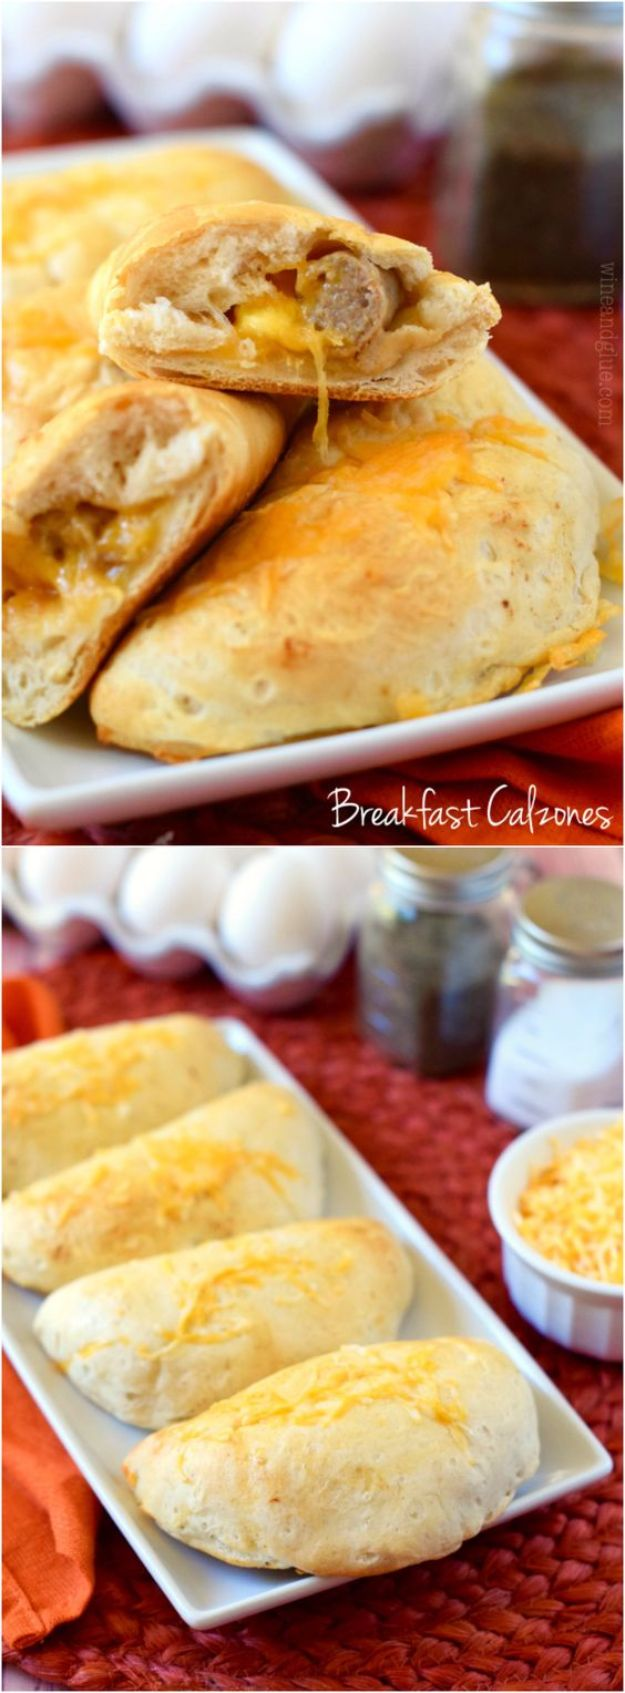 Best Canned Biscuit Recipes - Cool DIY Recipe Ideas You Can Make With A Can of Biscuits - Easy Breakfast, Lunch, Dinner and Desserts You Can Make From Pillsbury Pull Apart Biscuits - Garlic, Sour Cream, Ground Beef, Sweet and Savory, Ideas with Cheese - Delicious Meals on A Budget With Step by Step Tutorials http://diyjoy.com/best-recipes-canned-biscuits